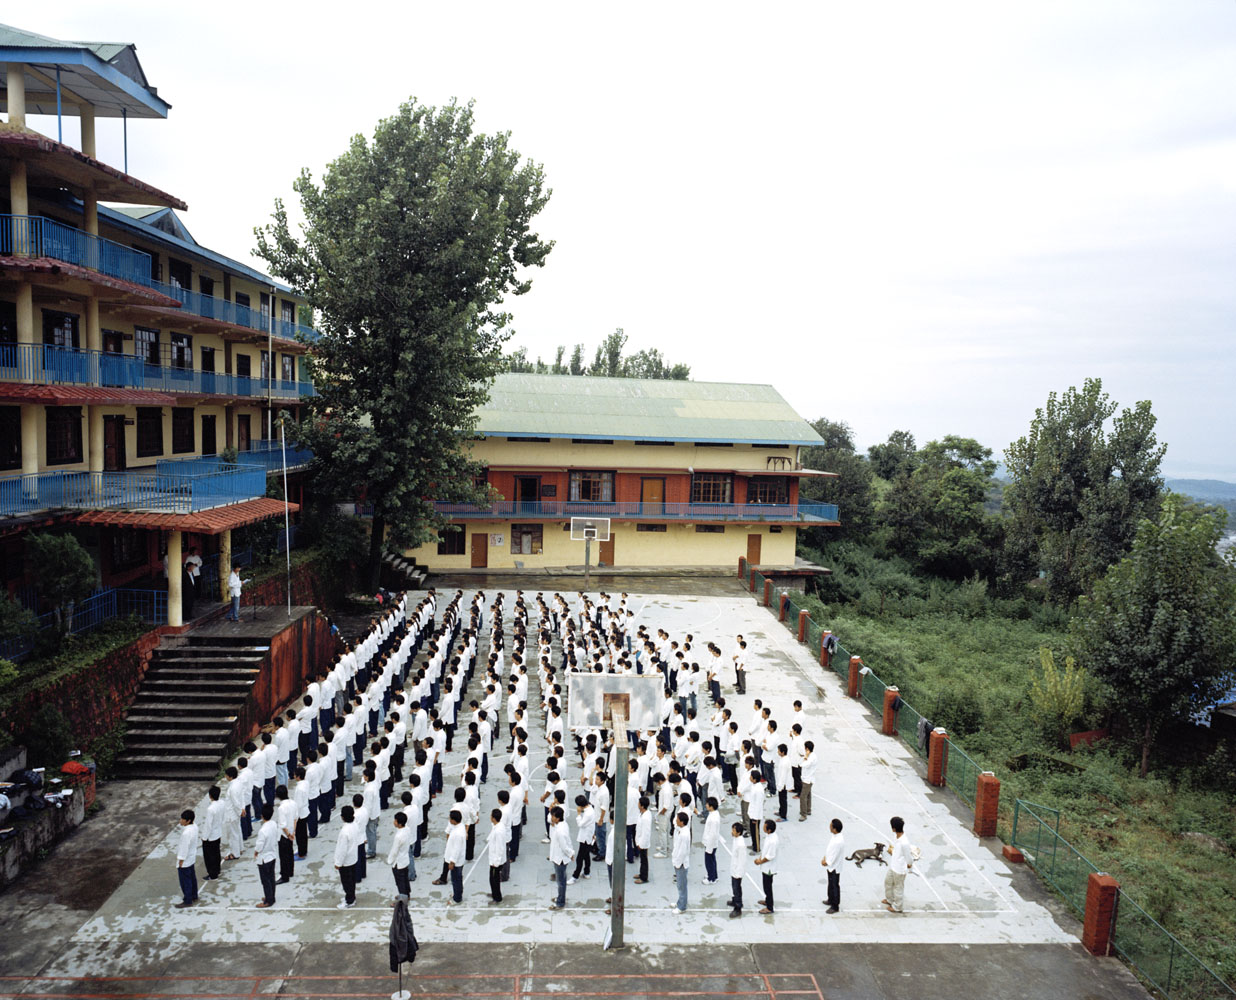 Students gather during the morning assembly at the Tibetan Transit School in Dharamsala.